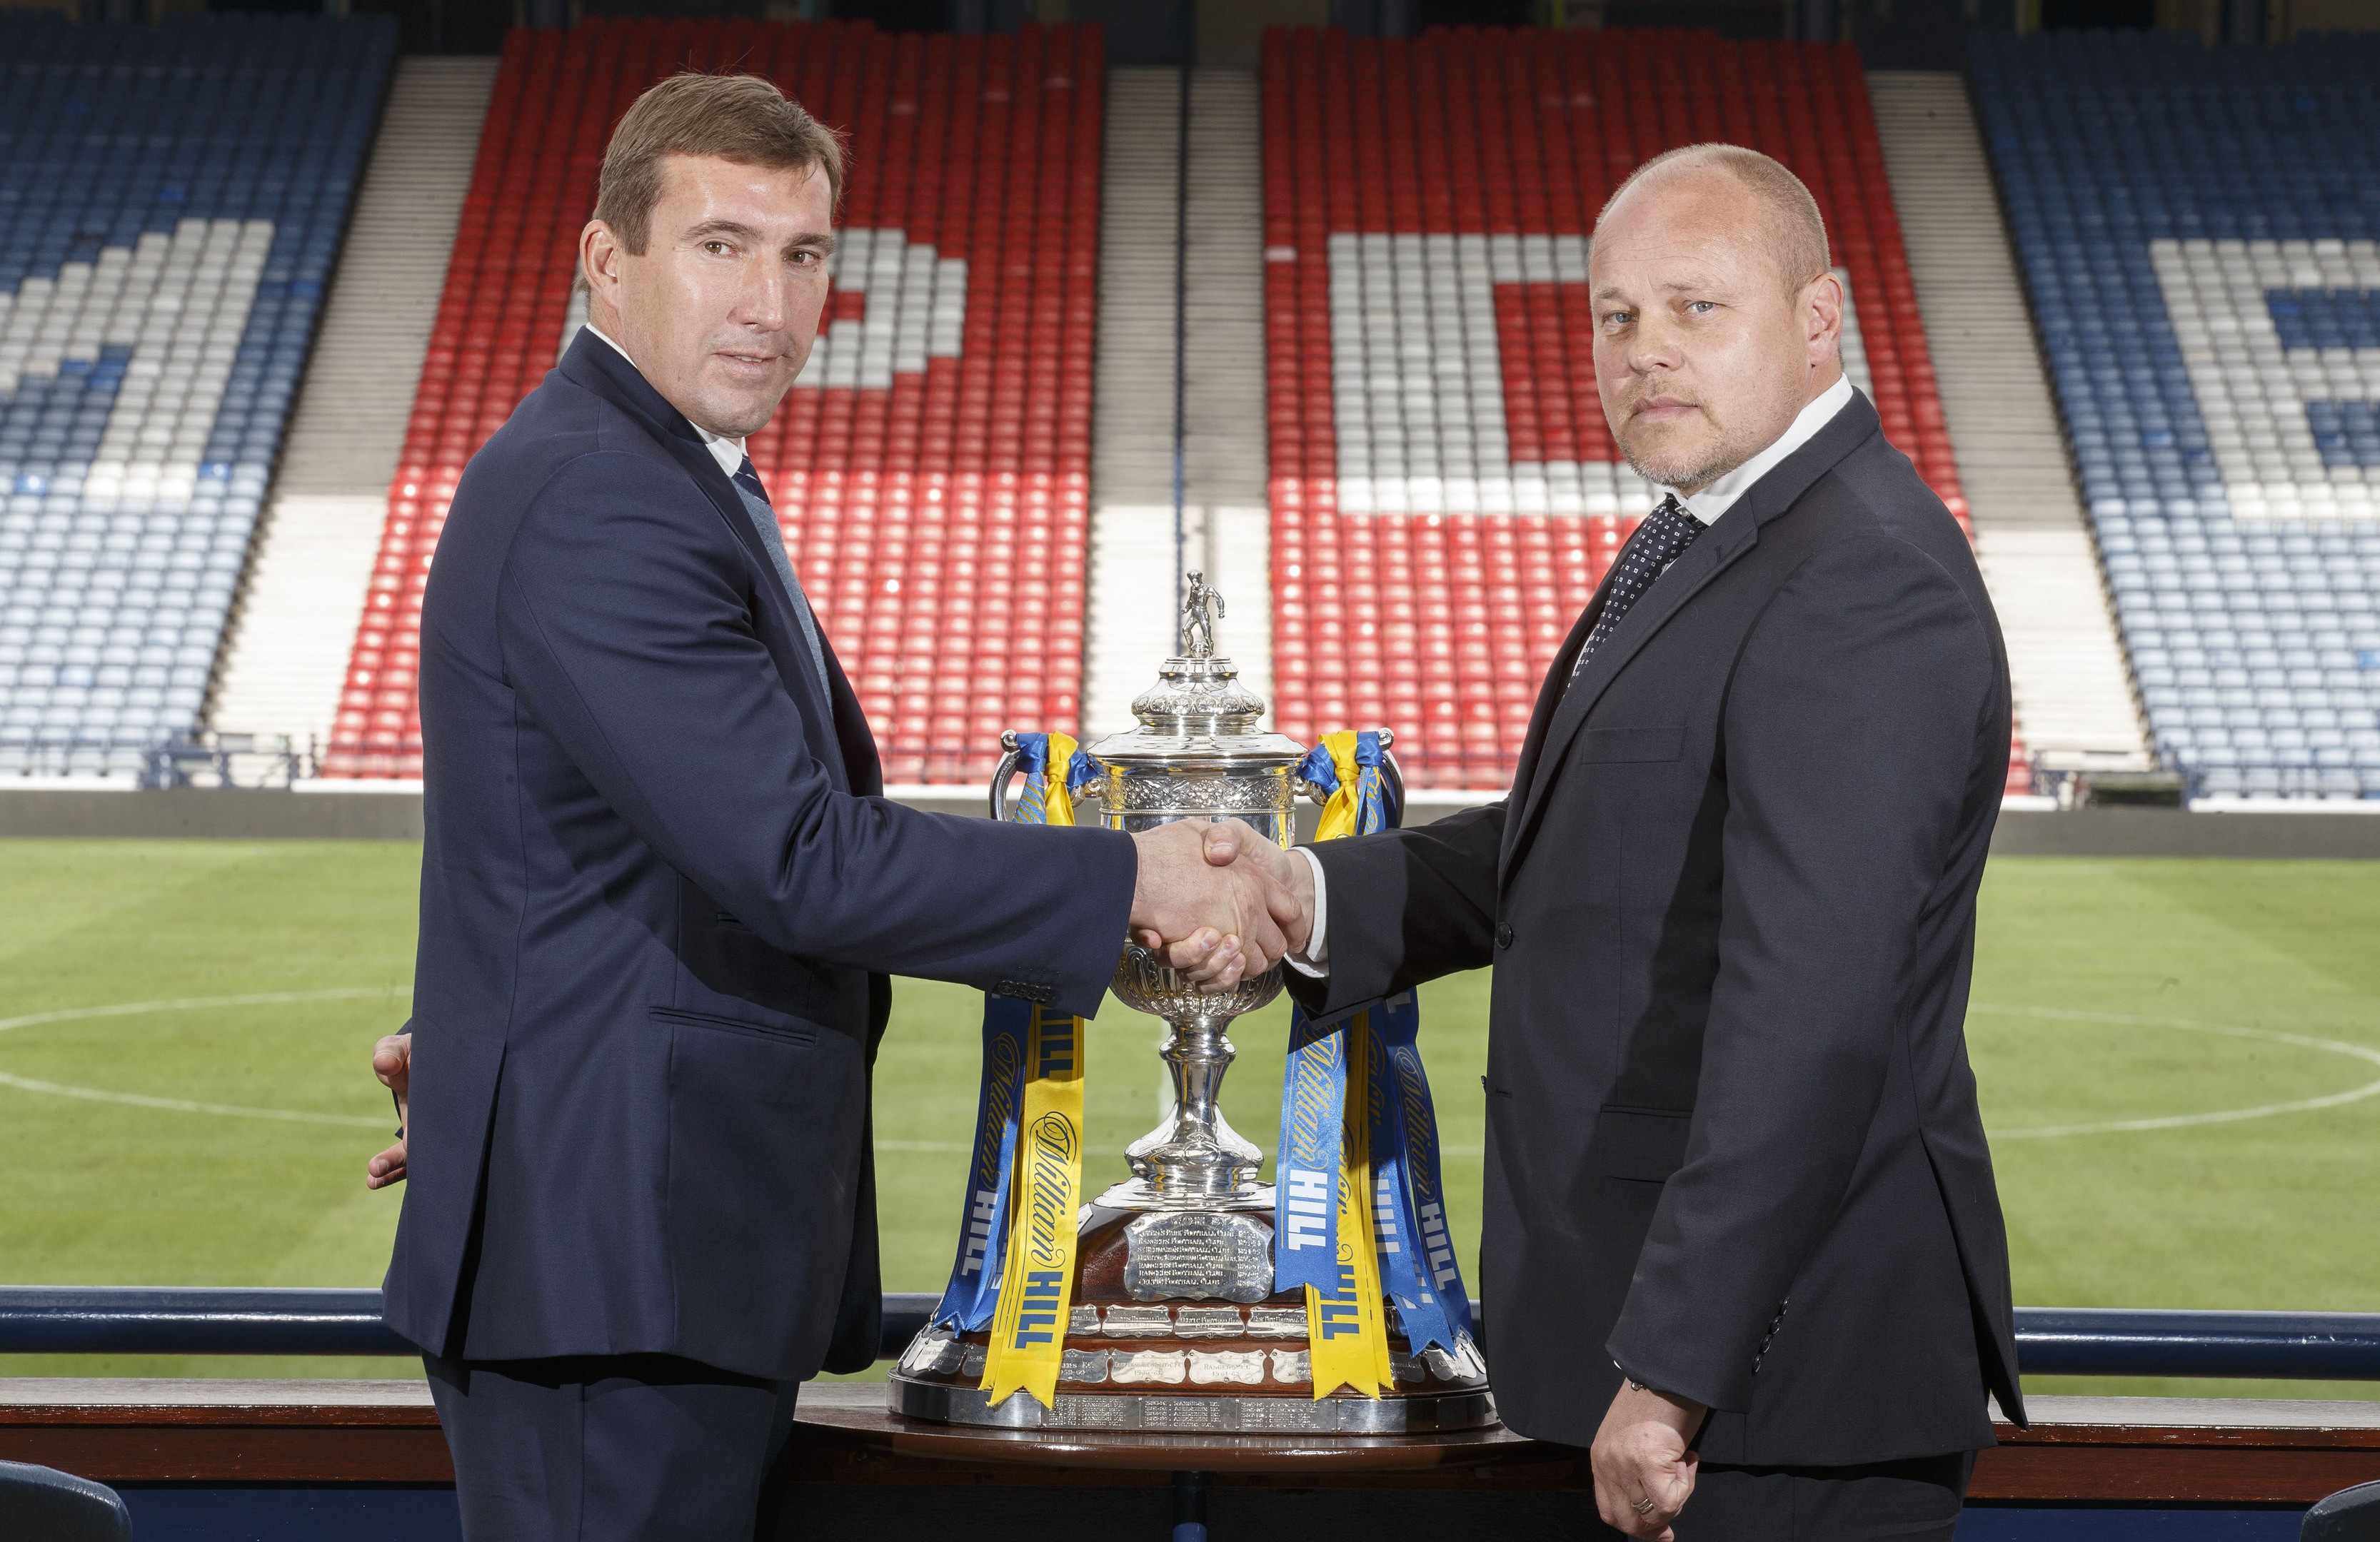 Alan Stubbs (L) and Mixu Paatelainen (Steve Welsh/William Hill/PA Wire)